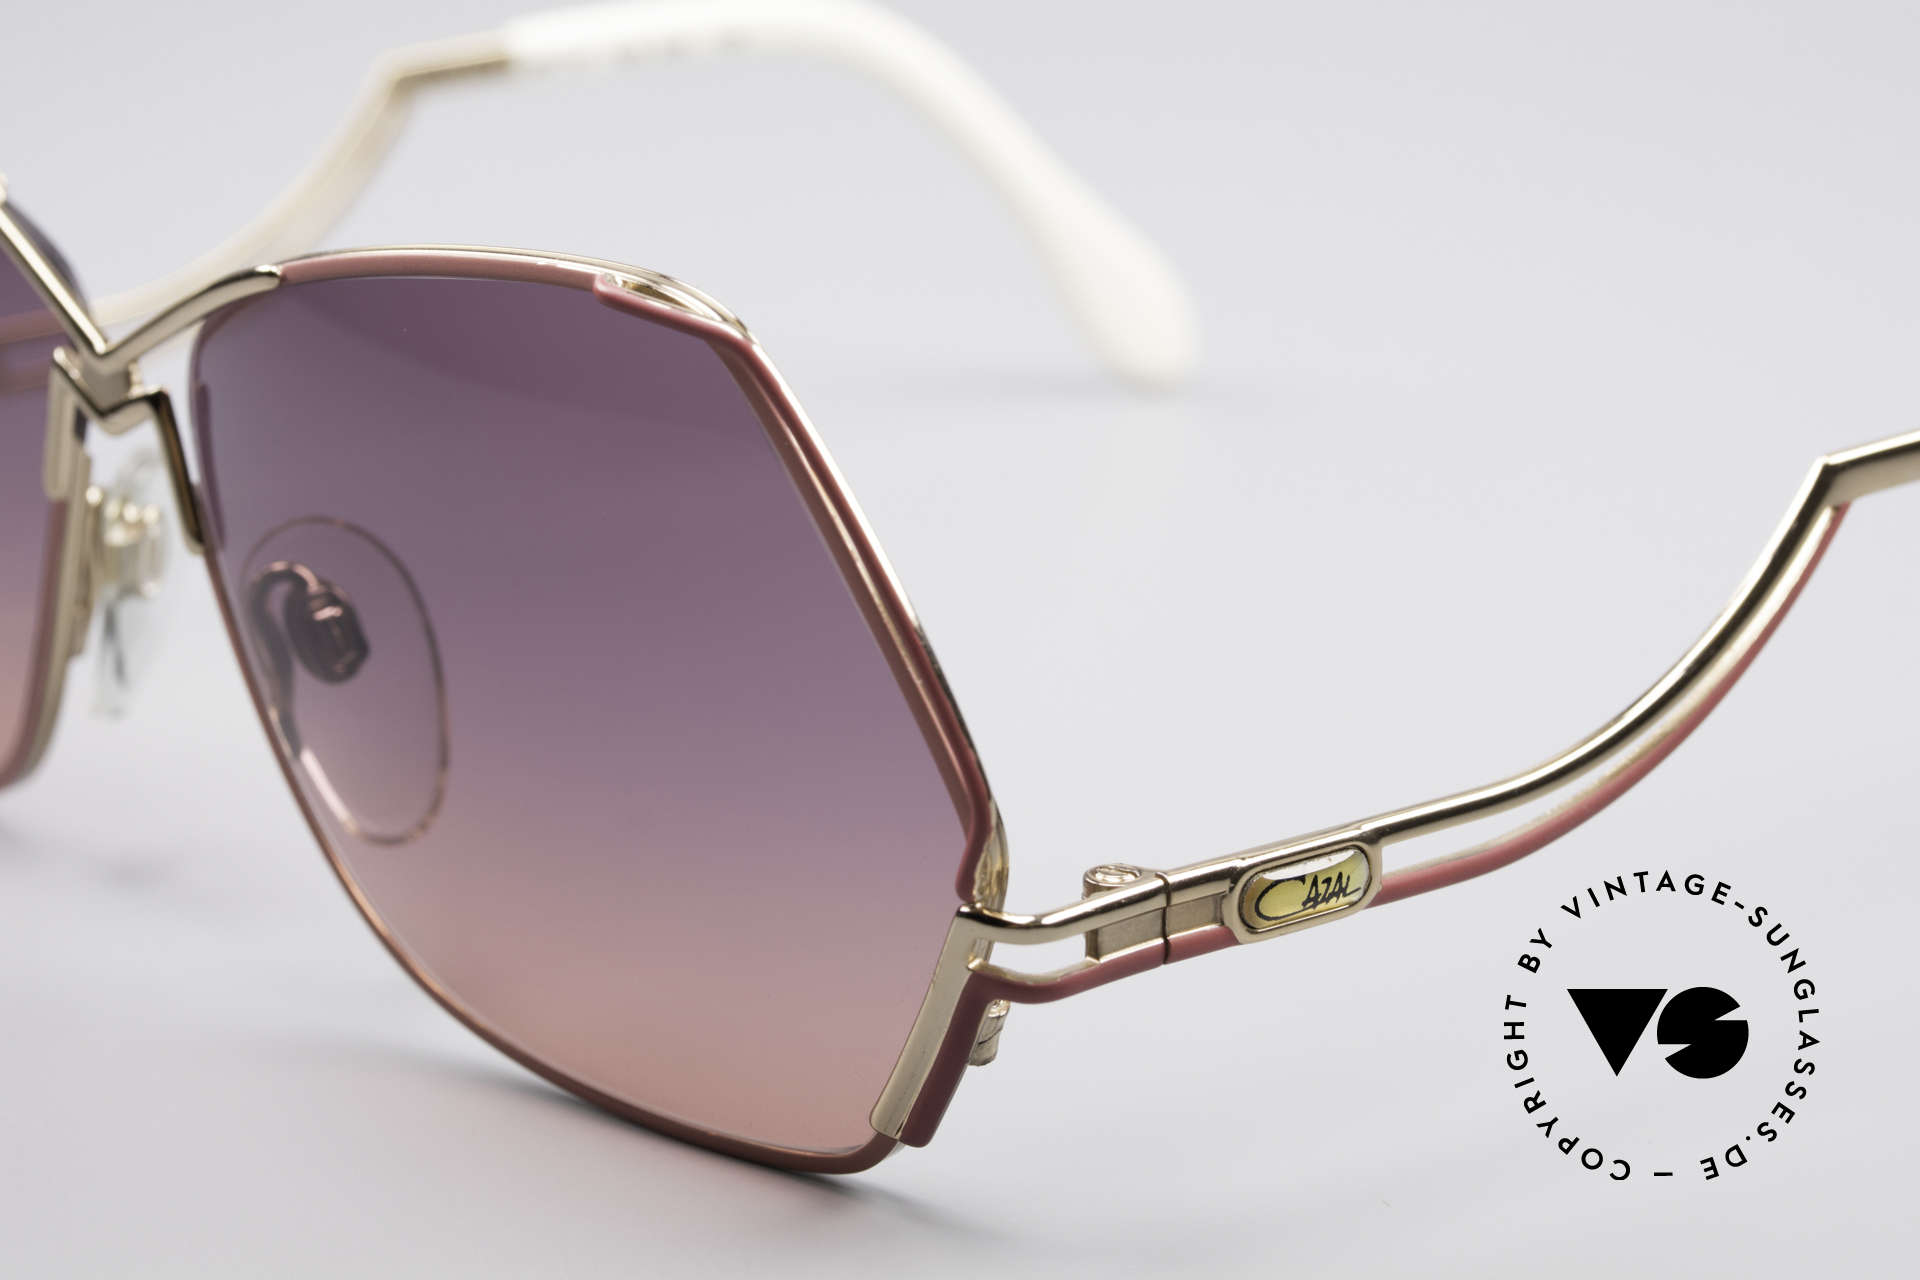 Cazal 226 Vintage Ladies Sunglasses, 80's frame (W.Germany), 90's frame (made in Germany), Made for Women